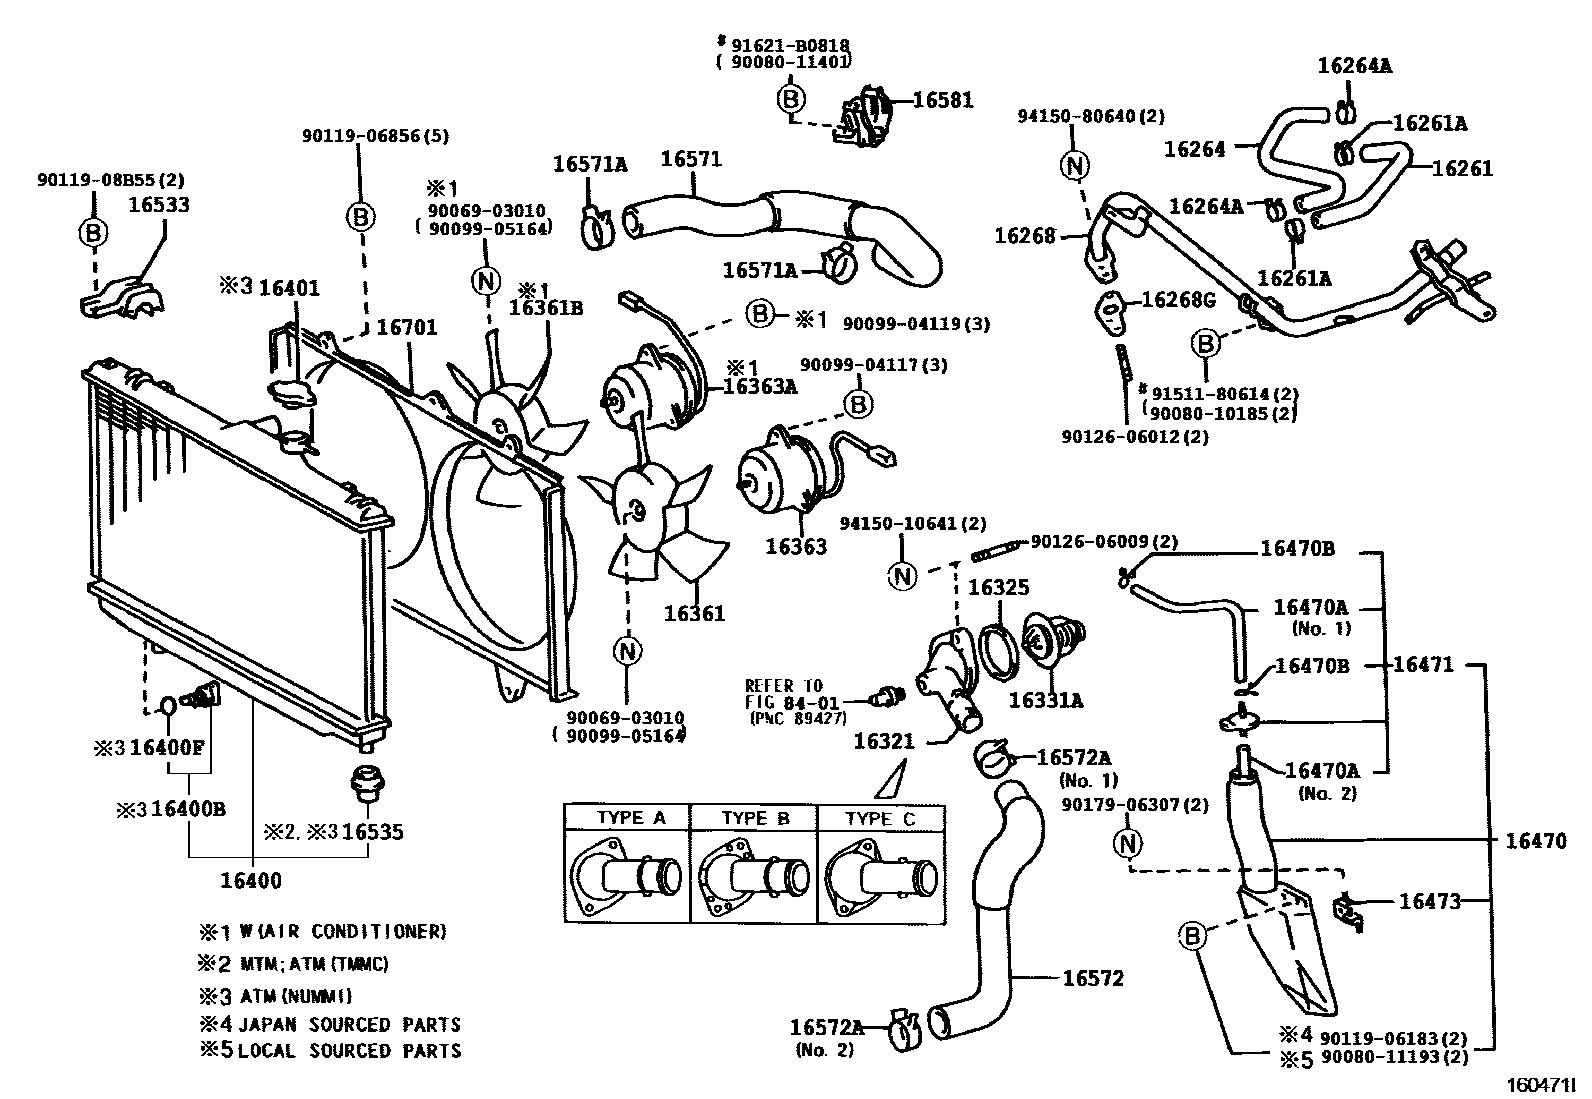 63361 P2432 Secondary Air Injection in addition 2005 Chevy Silverado Evap Solenoid likewise RepairGuideContent besides 1998 Pontiac Montana Engine Diagram as well ShowAssembly. on chevy colorado pcv valve engine location